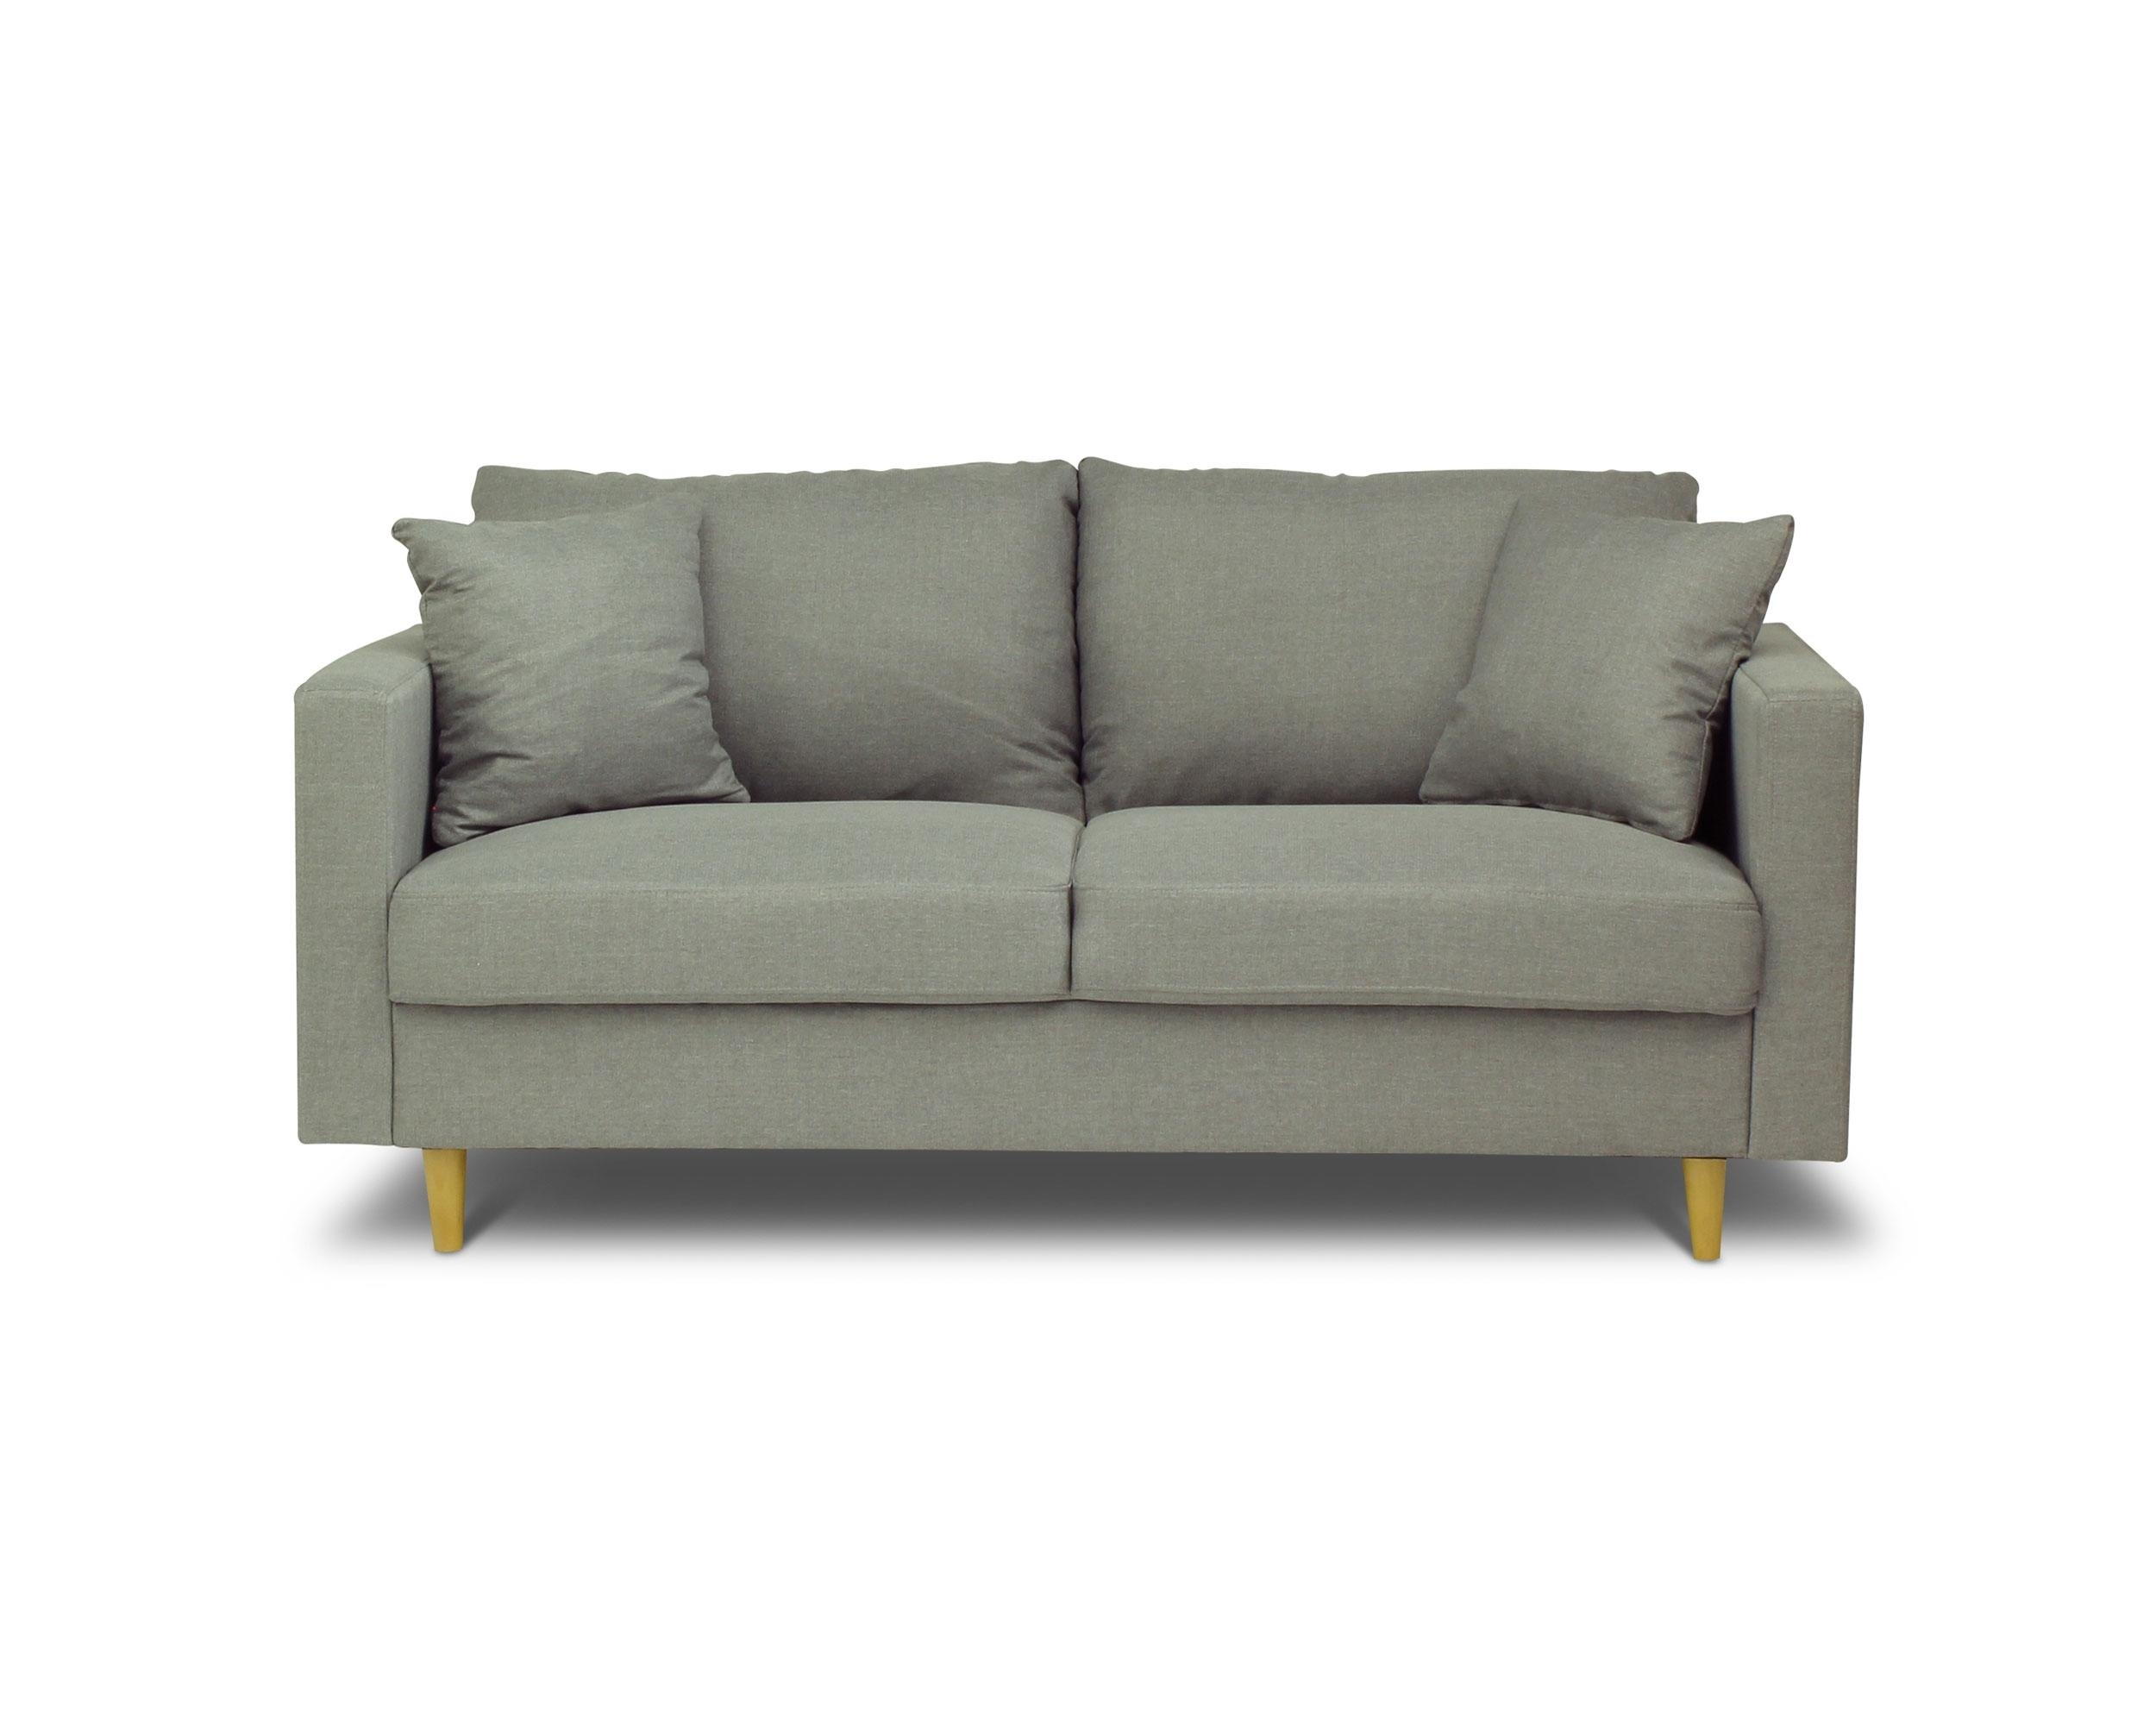 Copenhagen – 2 Seat Sofa | Loungelovers Pertaining To 2 Seater Sofas (Image 8 of 20)